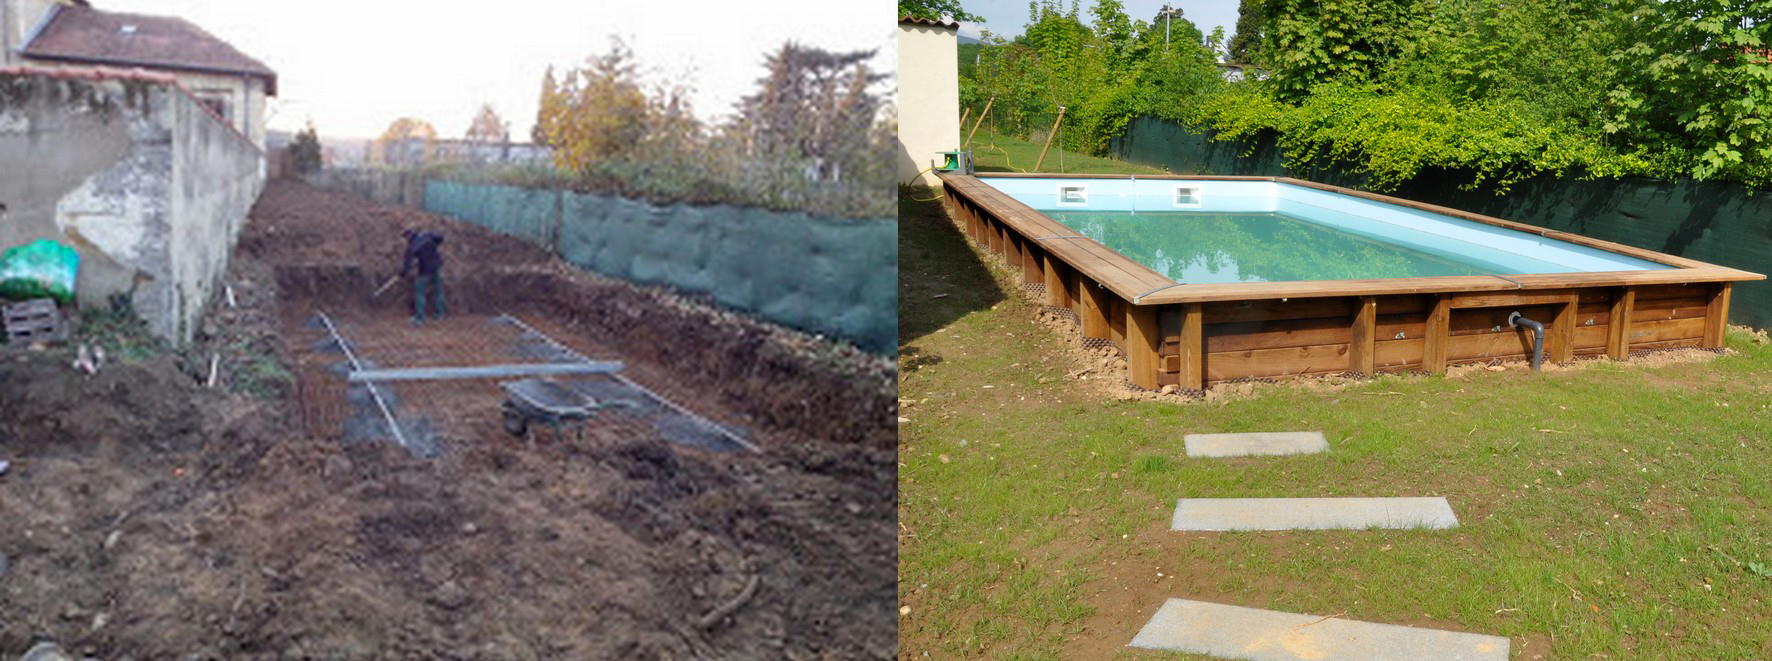 Amenagement piscine en bois for Piscine bois jardin